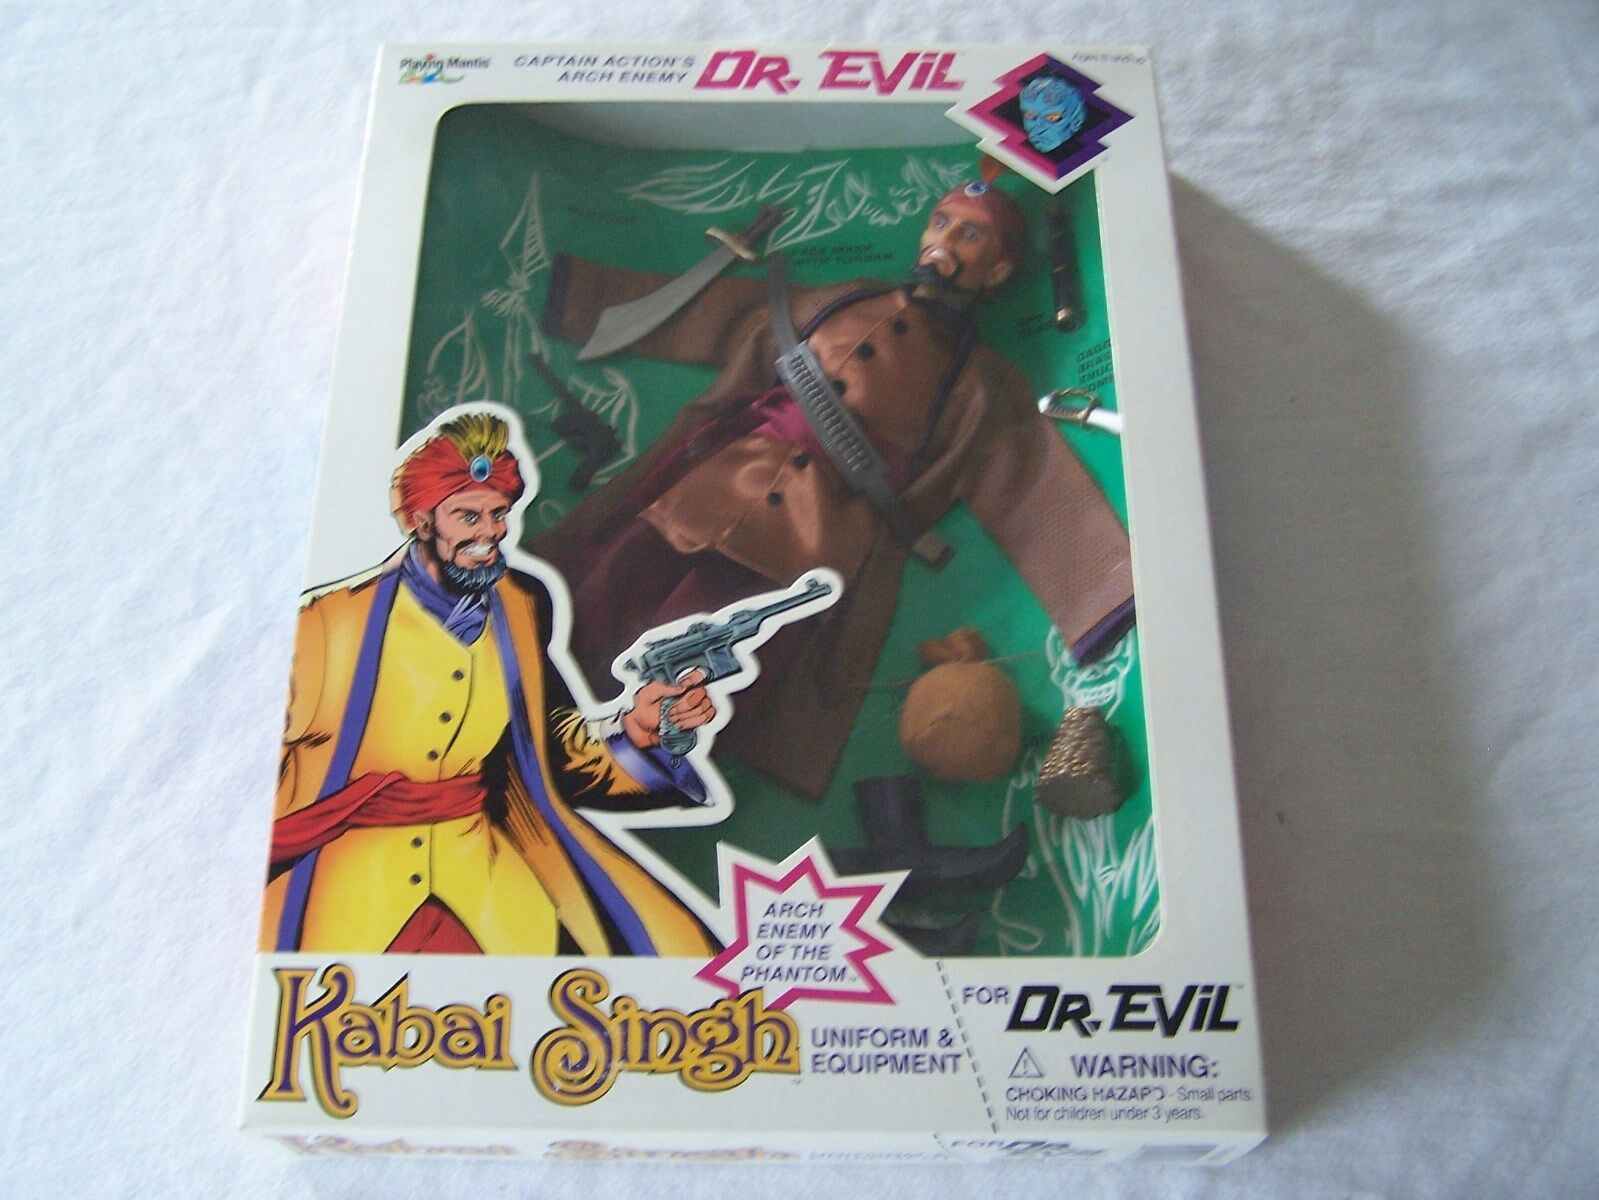 CAPTAiN ACTiON as Kabai Singh for DR. EViL figure UNIFORM & EQUIPMENT set MIB